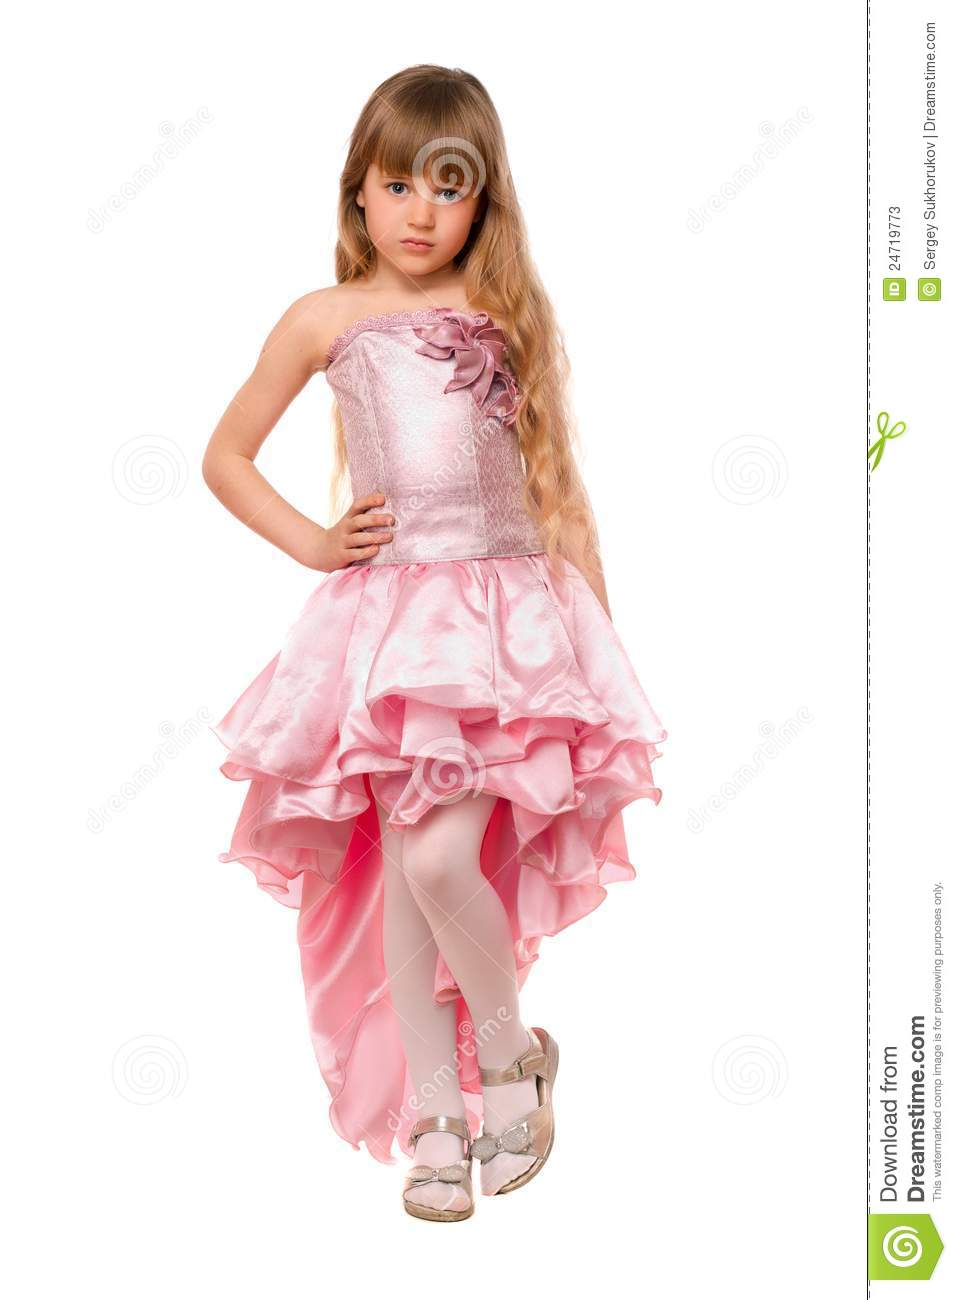 Boy Or Girl, Guys And Girls, Cool Girl, Pageant Dresses, Girls Dresses, Womanless Beauty Pageant, Boys Wear, Pretty Outfits, Men Dress, Faces, Dresses Of Girls, Pagent Dresses, Pageant Gowns Find this Pin and more on Halloween - Dressed as a Girl or Woman by Rich Mitch.